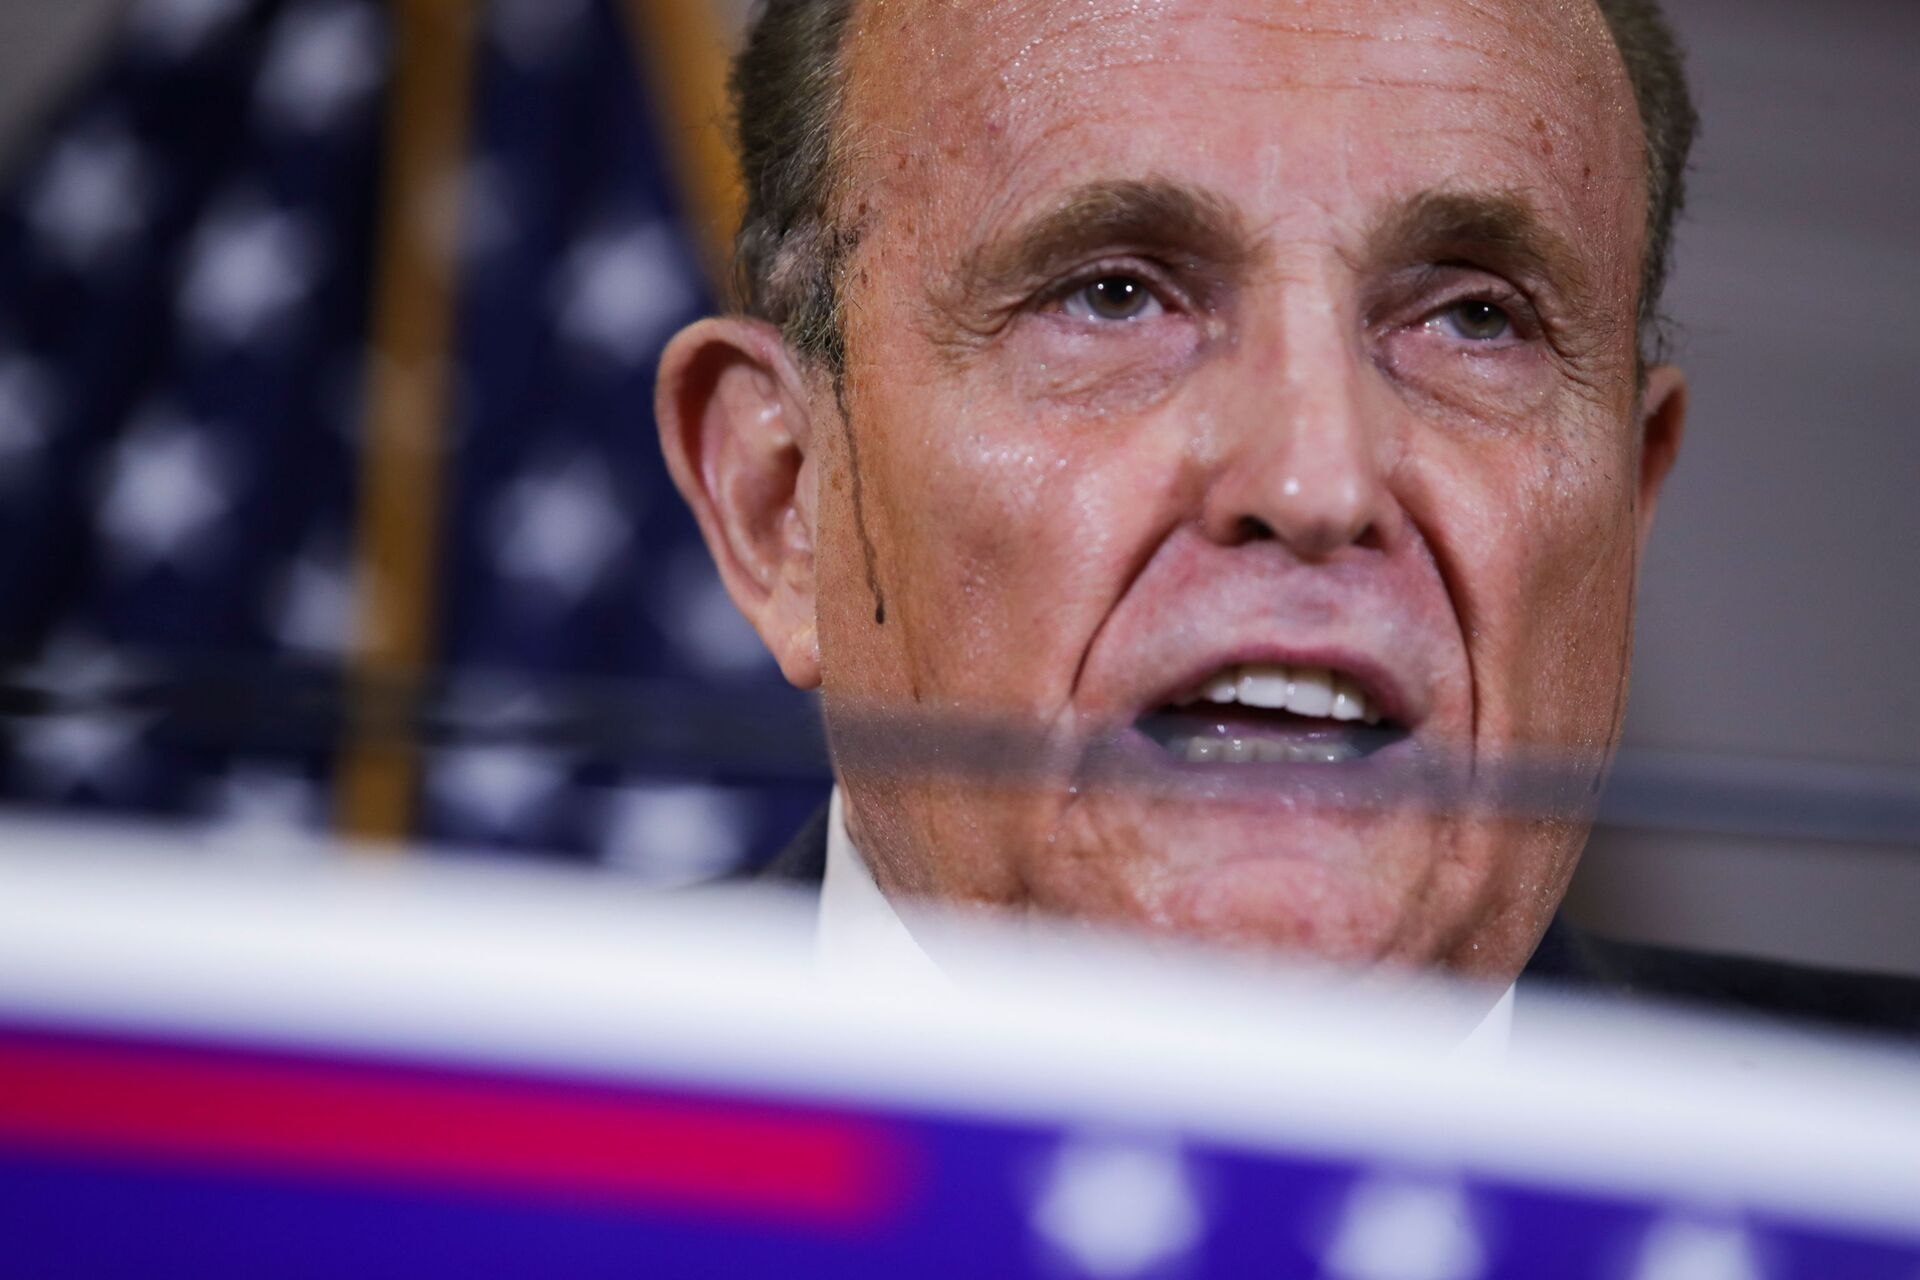 Former New York City Mayor Rudy Giuliani, personal attorney to U.S. President Donald Trump, speaks during a news conference about the 2020 U.S. presidential election results at Republican National Committee headquarters in Washington, U.S., November 19, 2020. REUTERS/Jonathan Ernst - Sputnik International, 1920, 07.09.2021